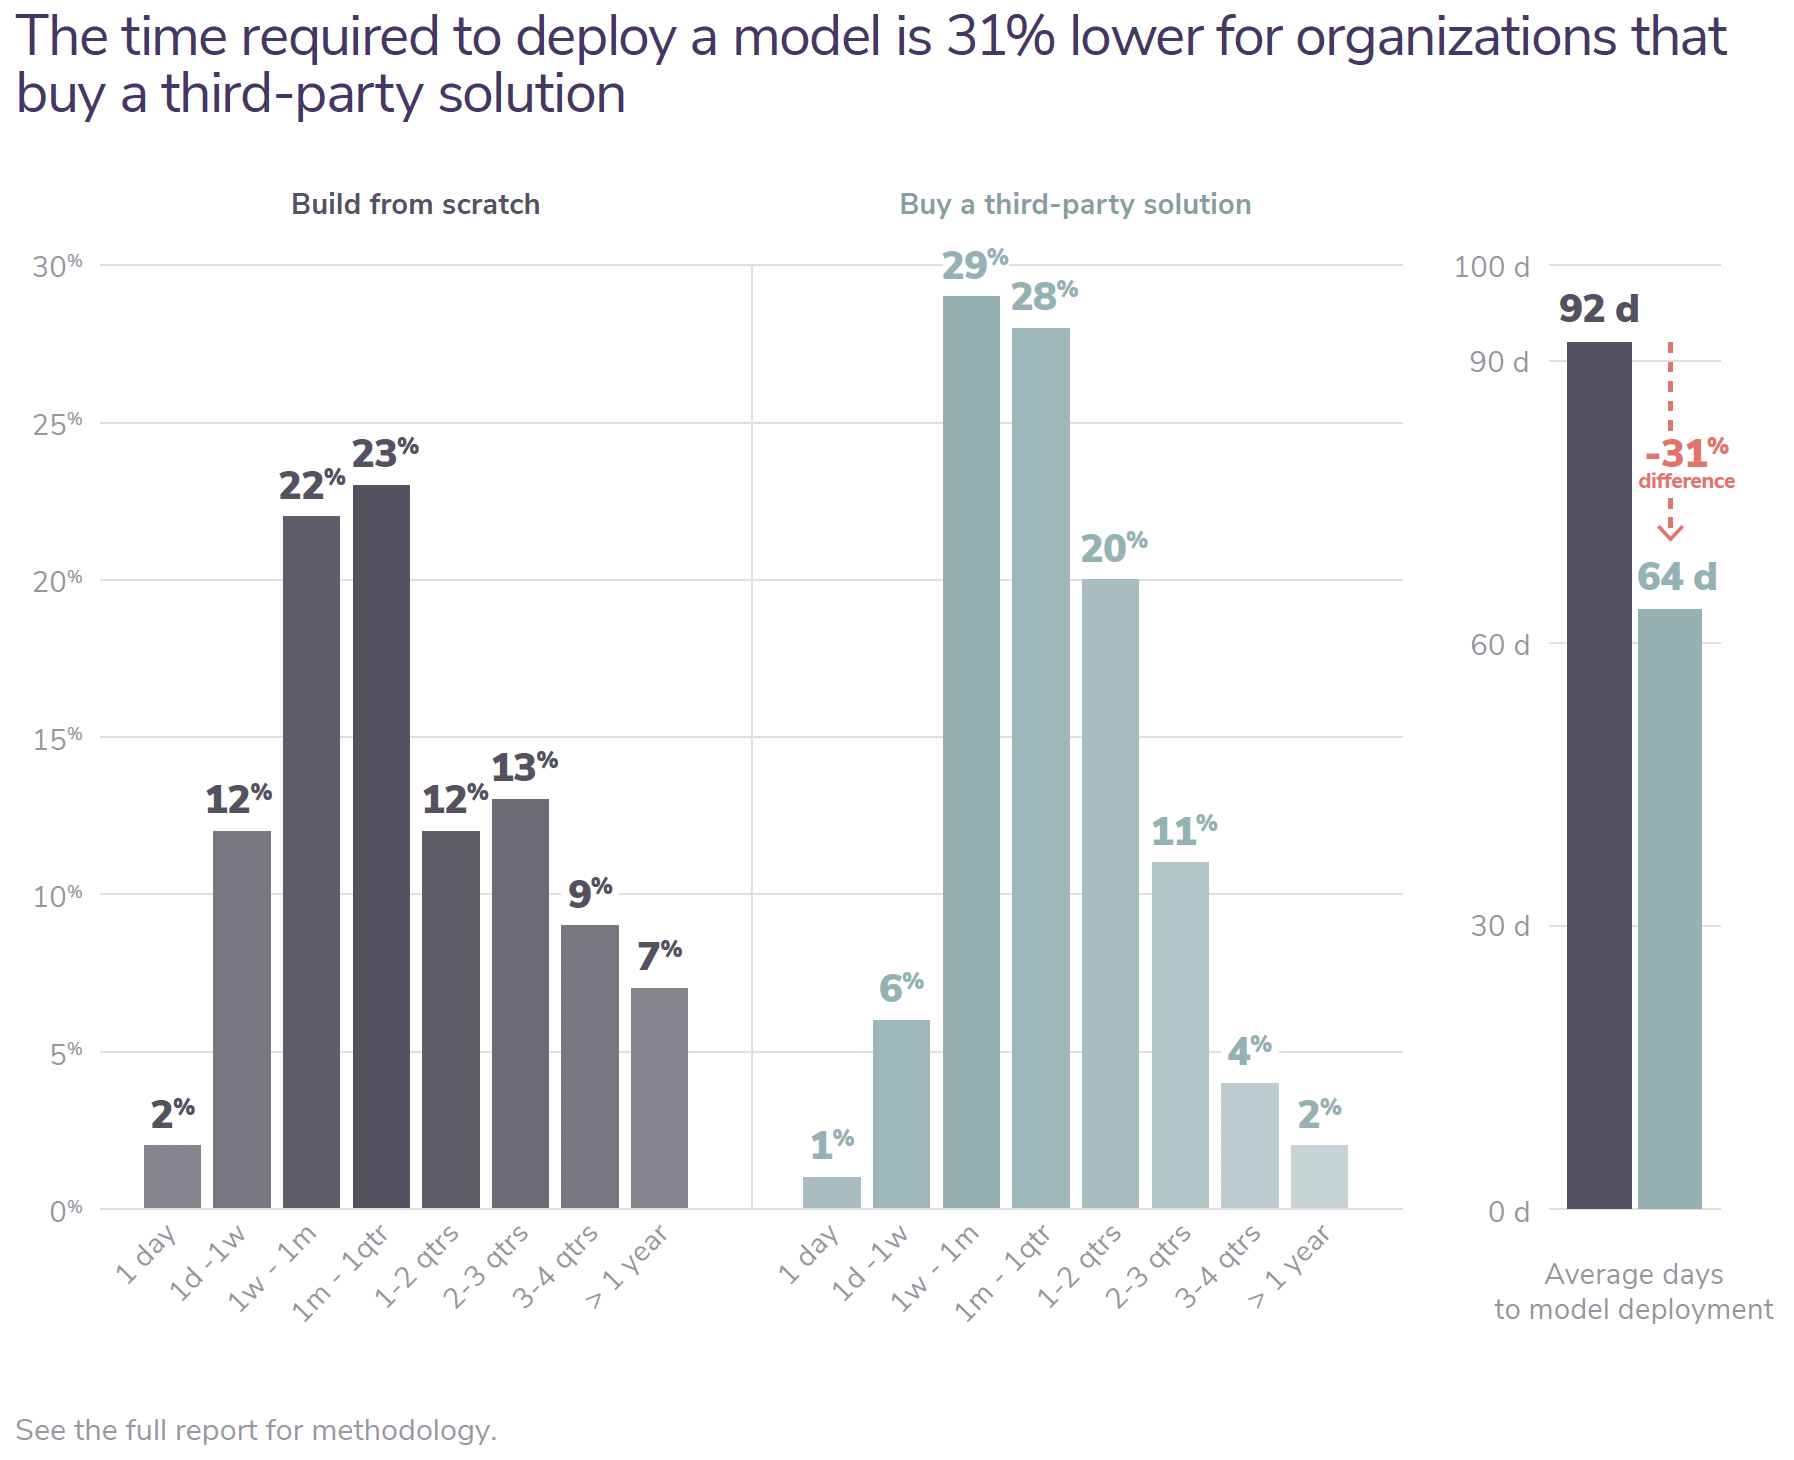 The time required to deploy a model is 31% lower for organizations that buy a third-party solution